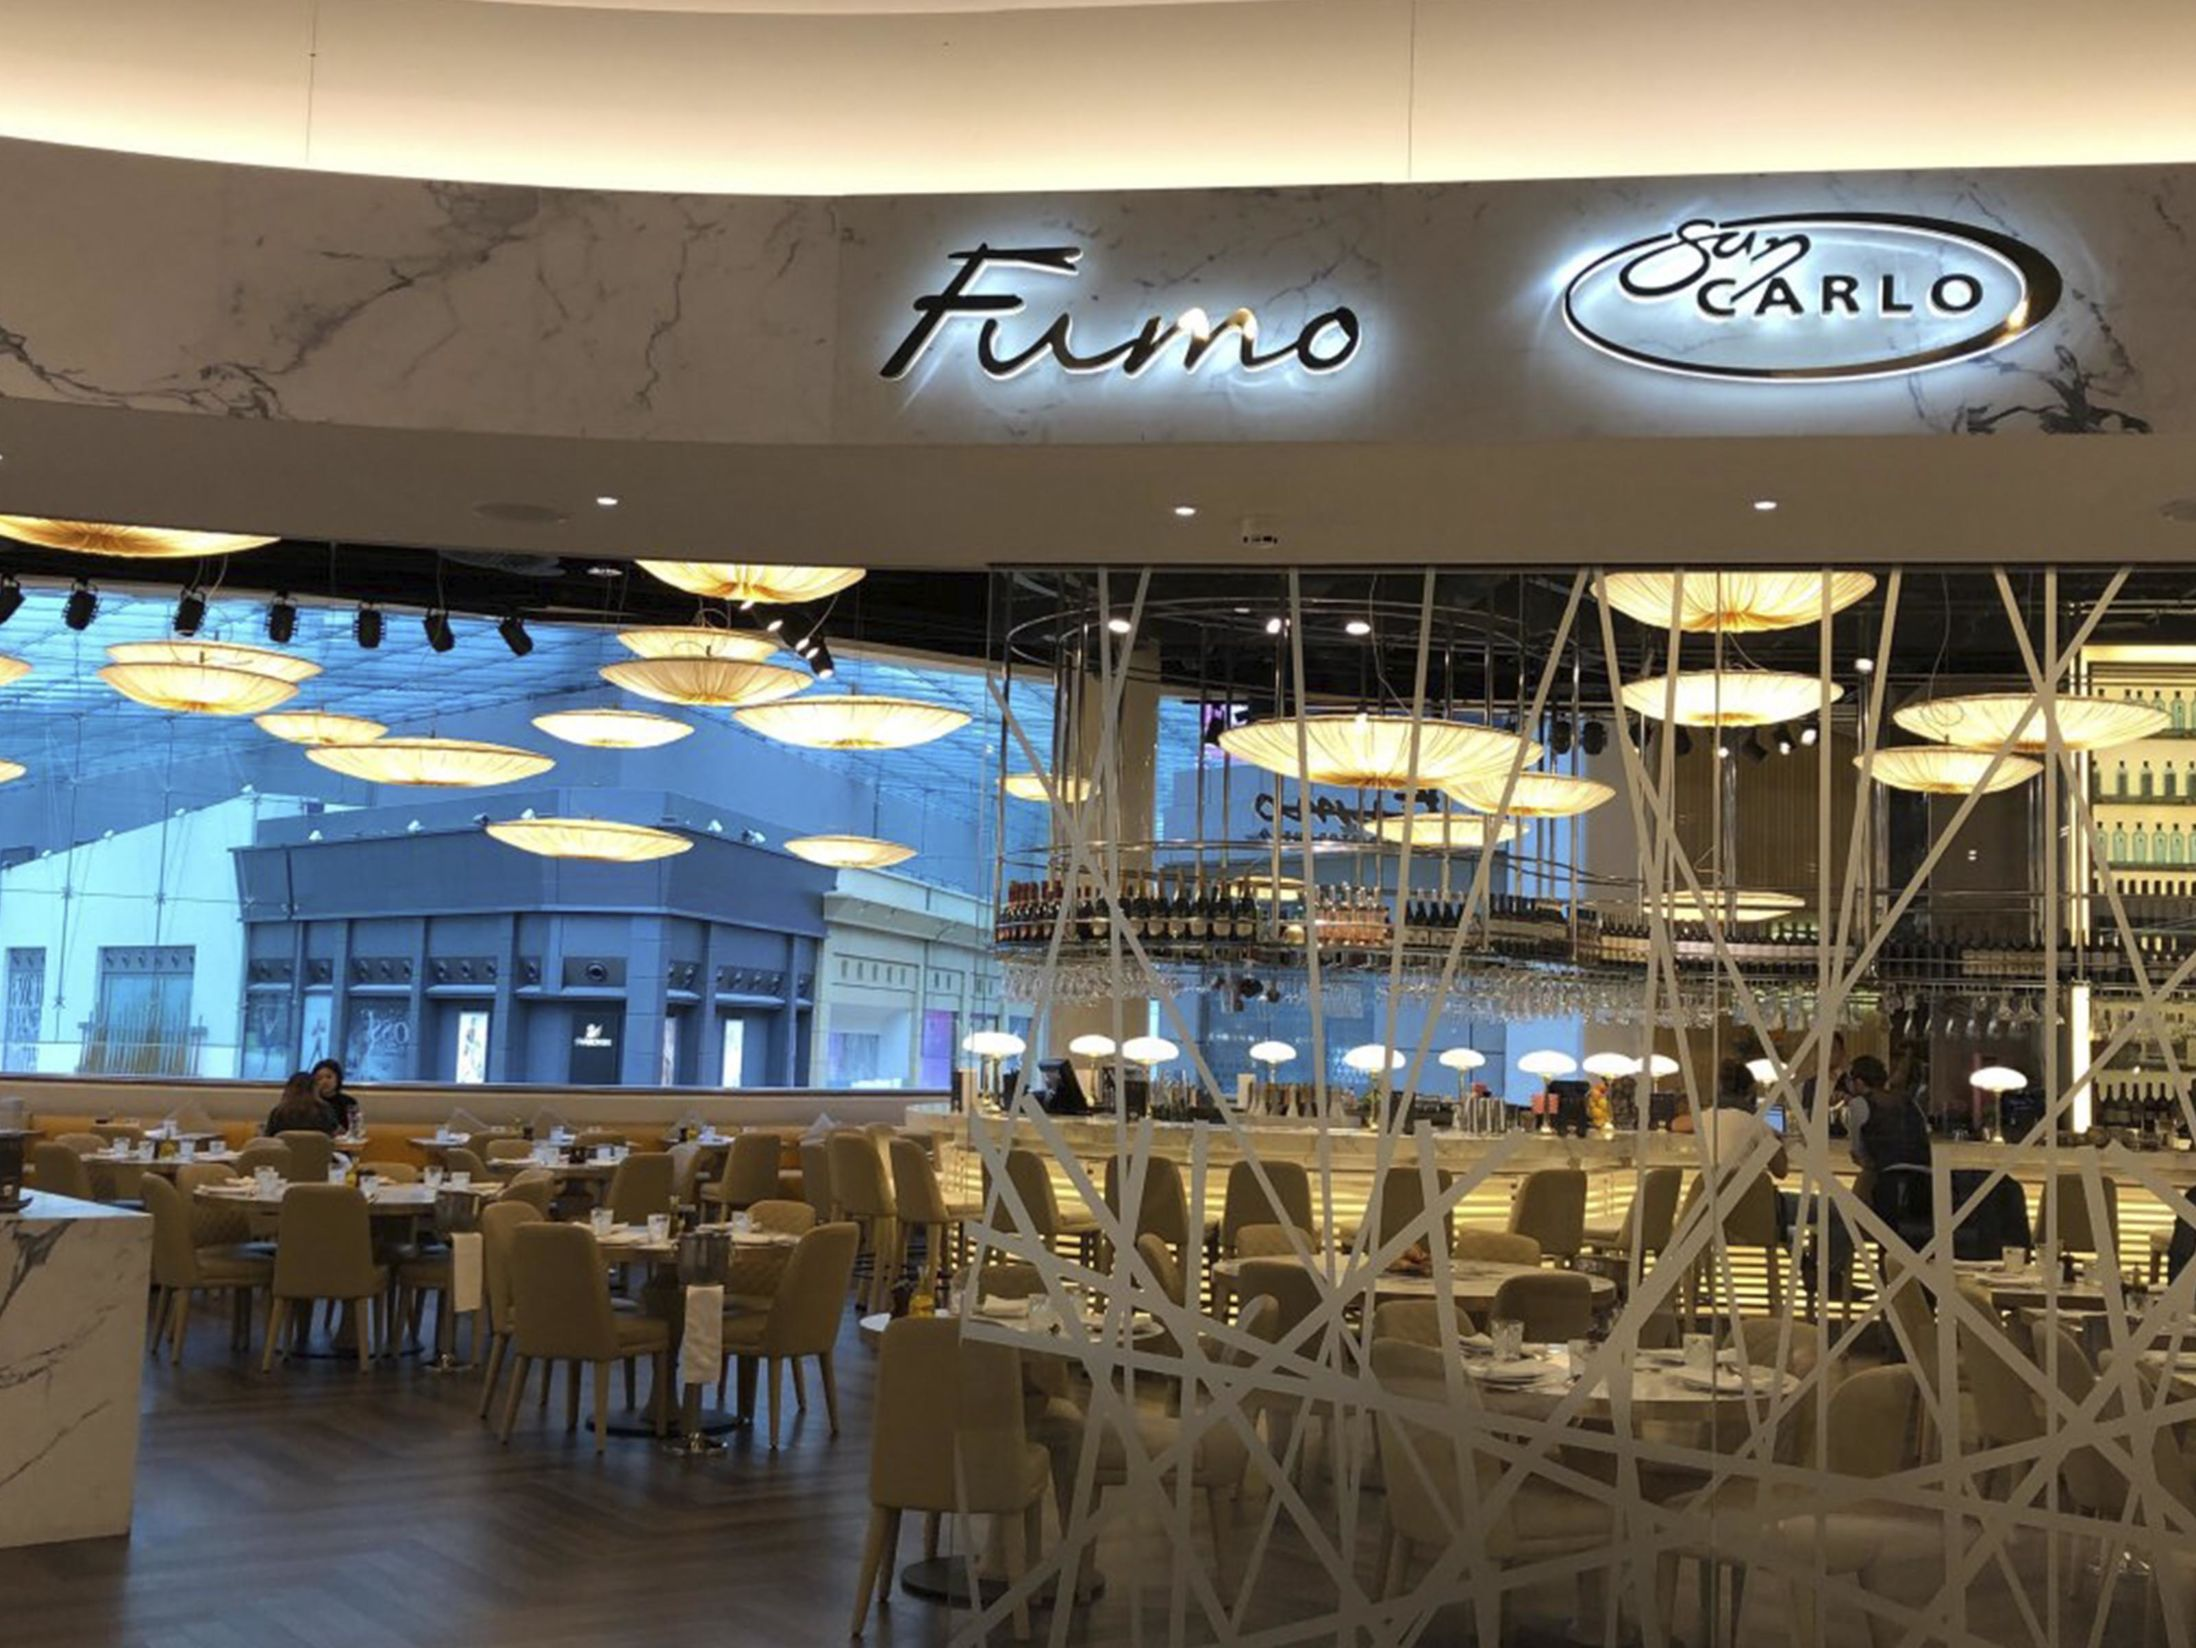 Best Italian Restaurants in Birmingham - Fumo